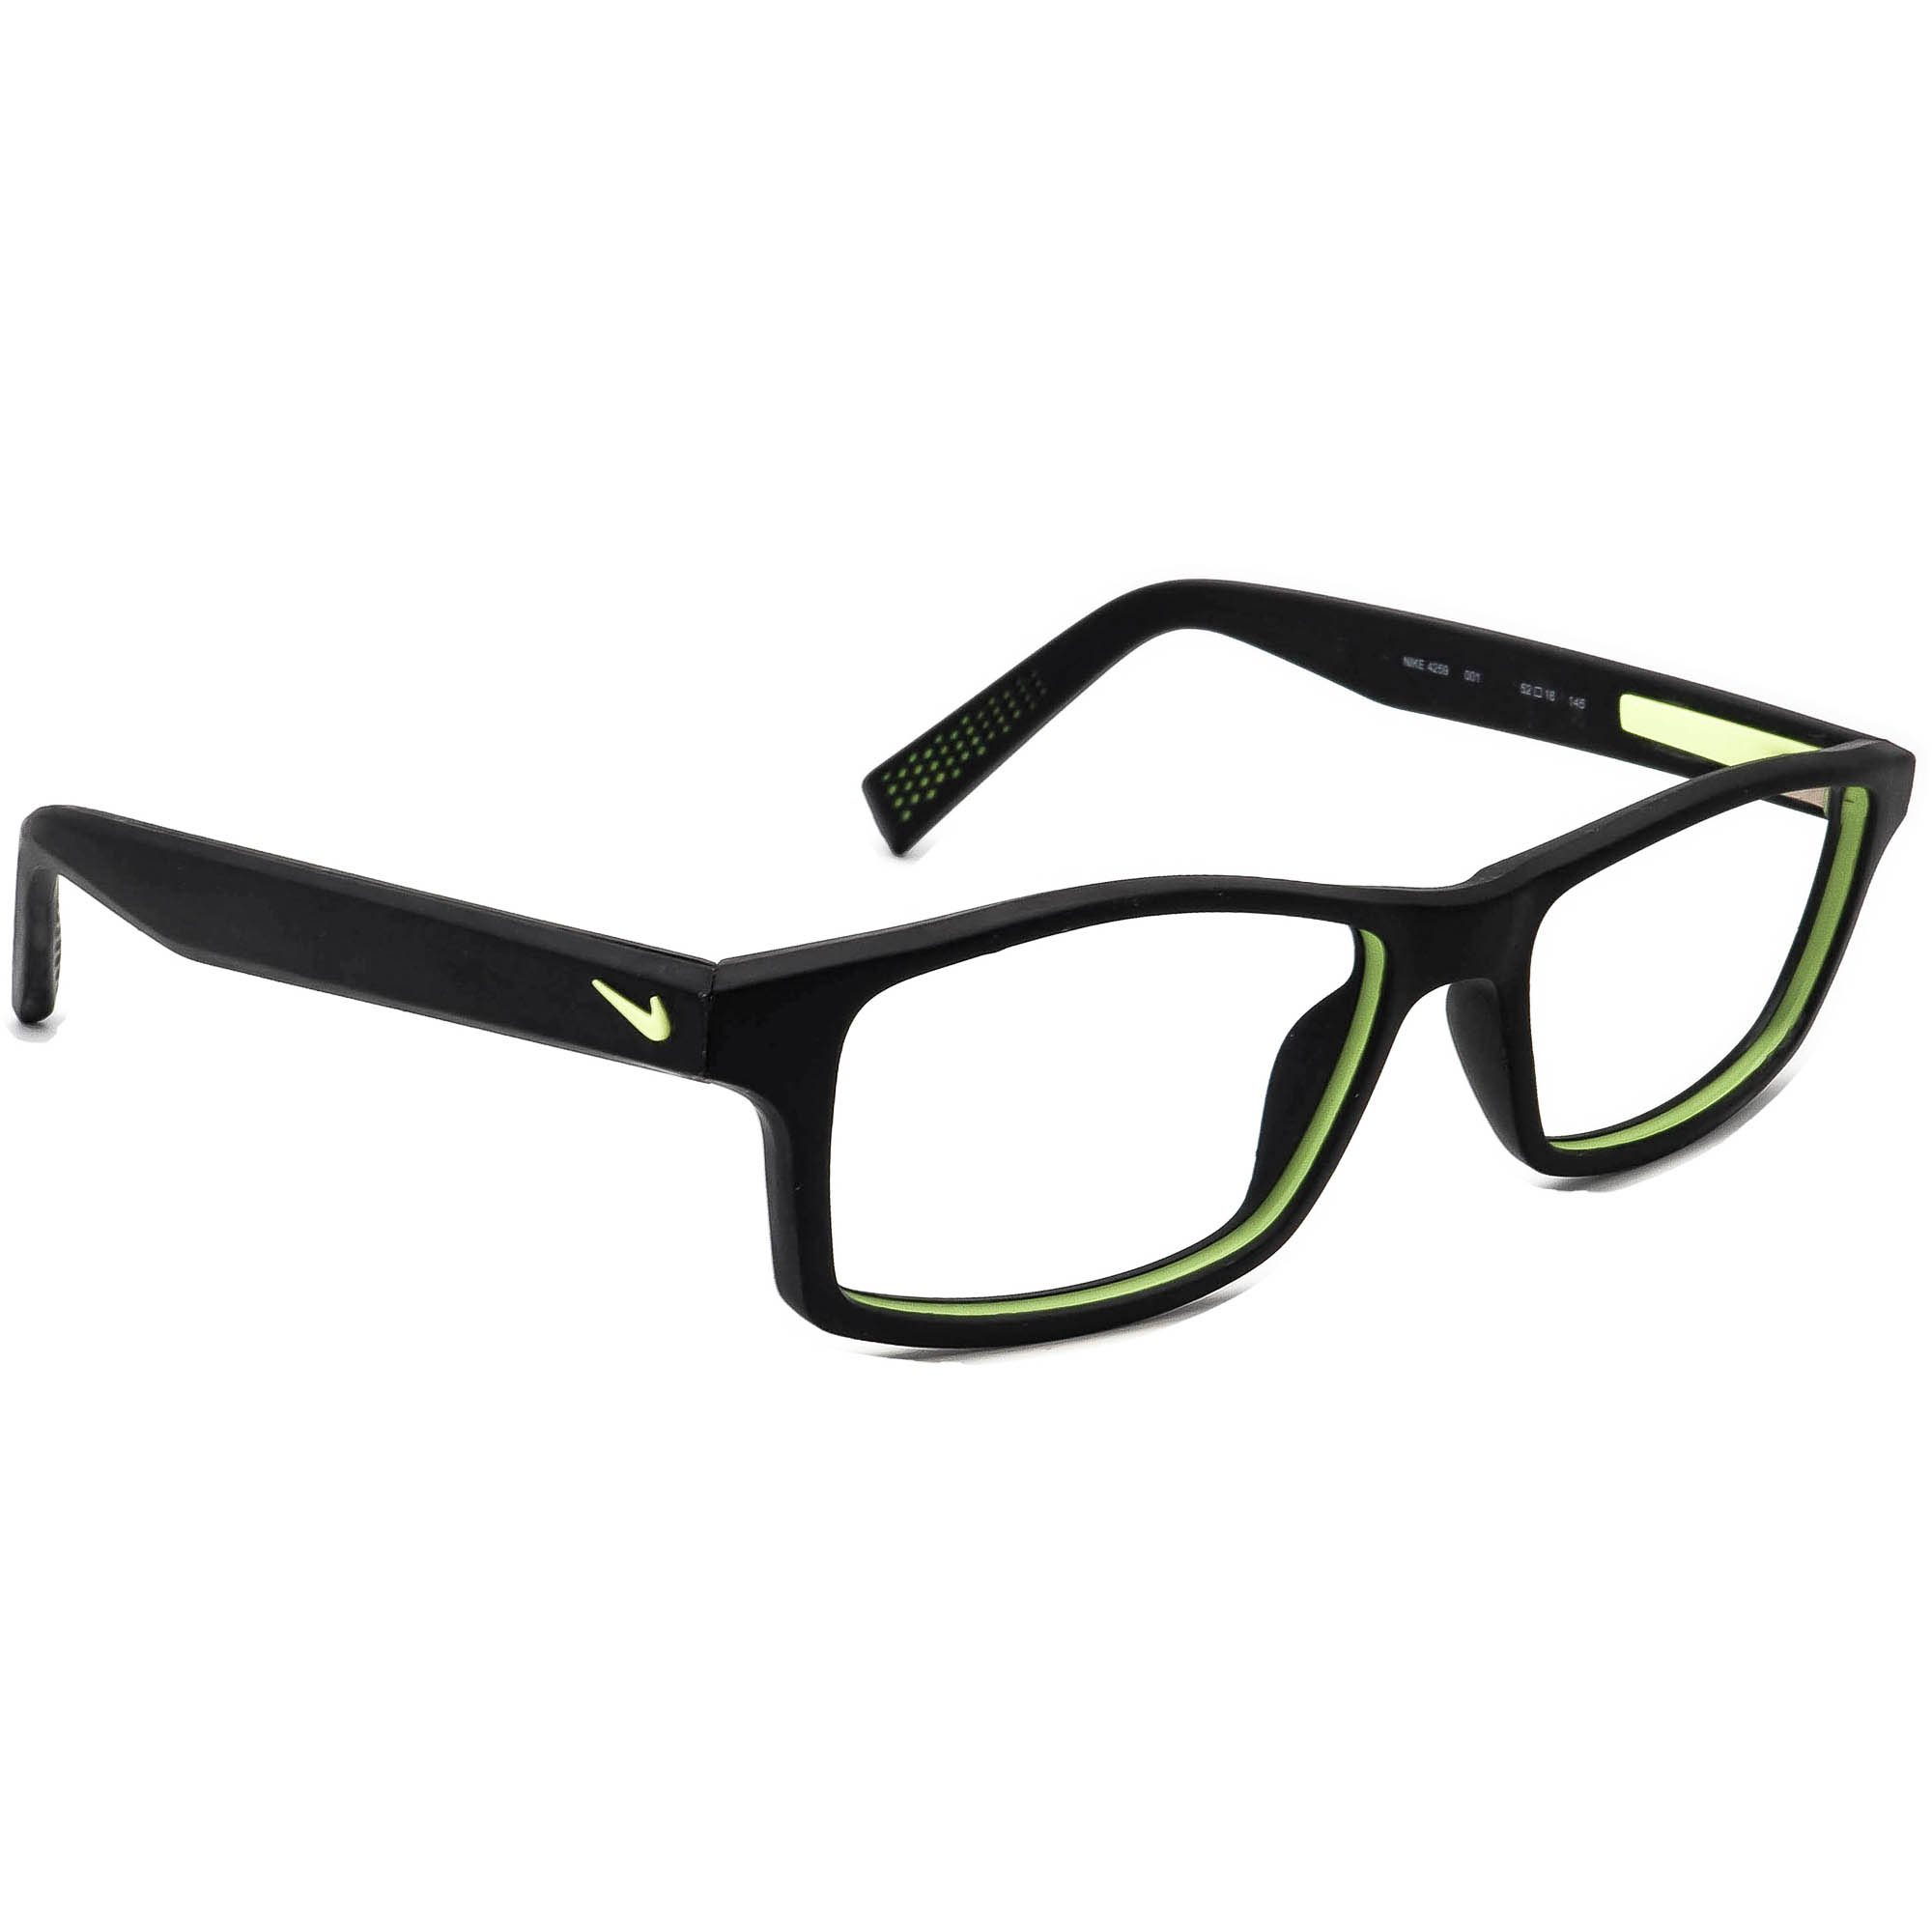 Nike 4259 001 Flexon Bridge Eyeglasses